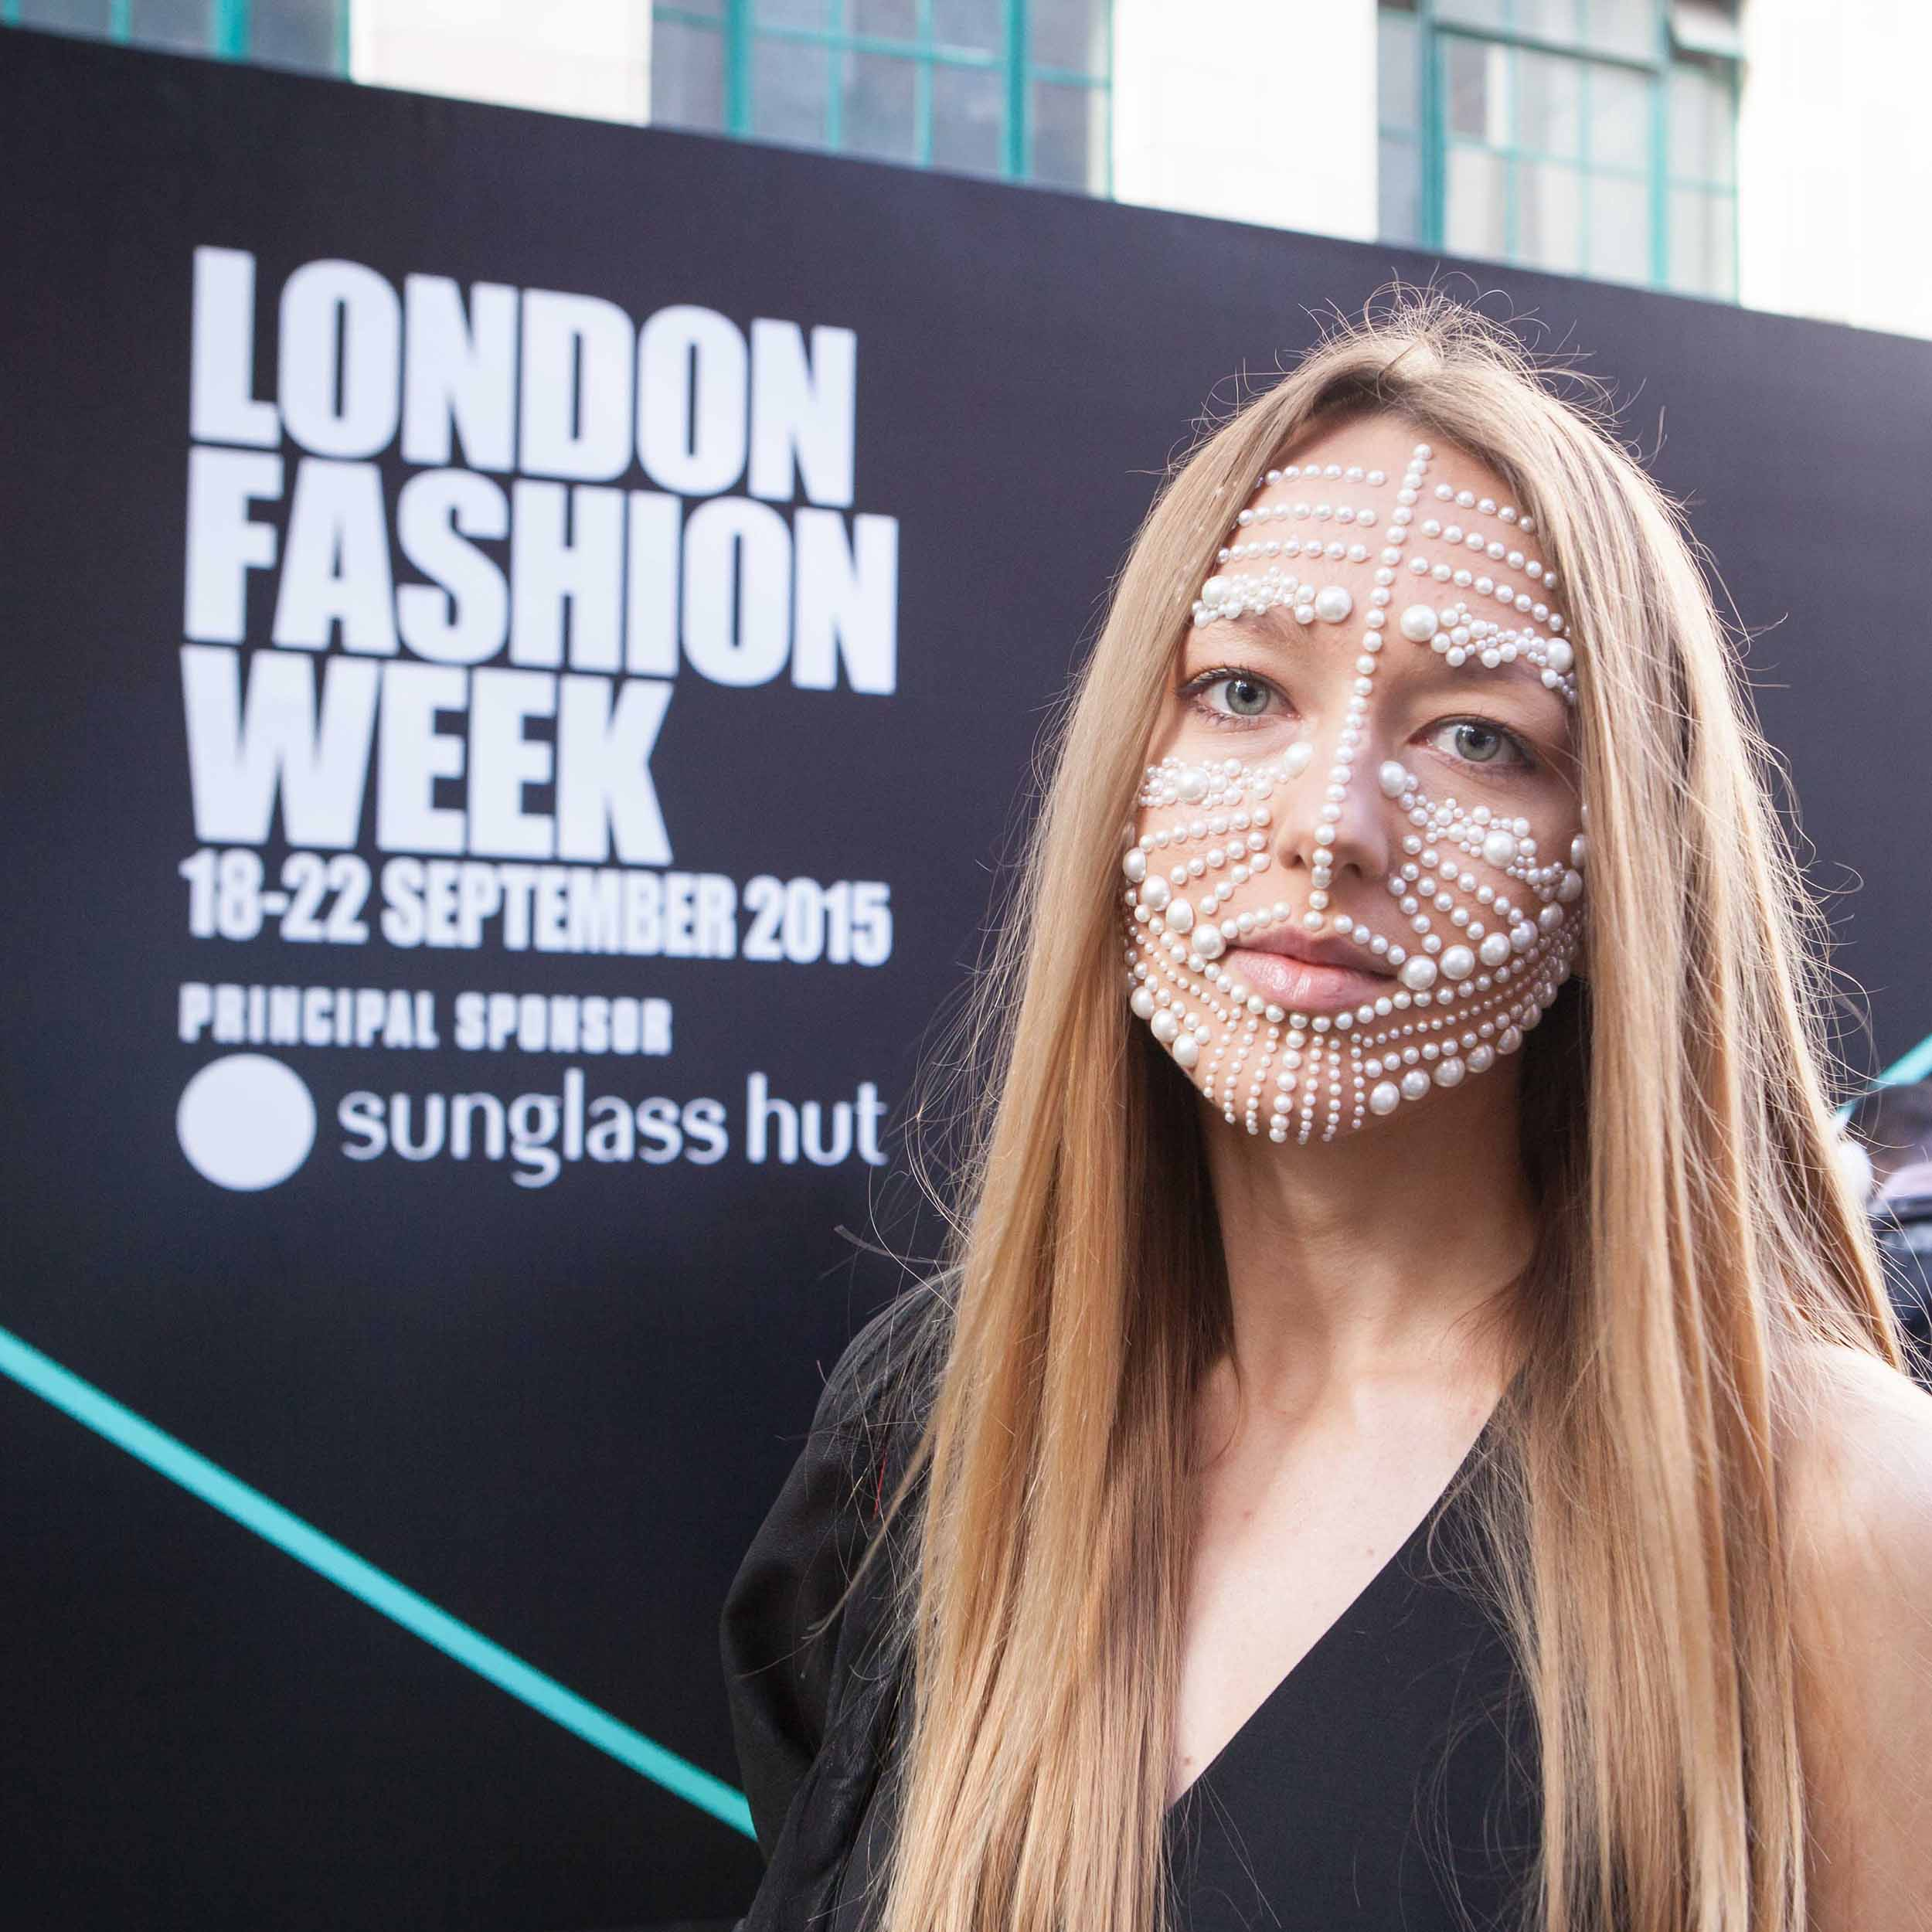 GET THE LOOK: LONDON FASHION WEEK SS16 Part I